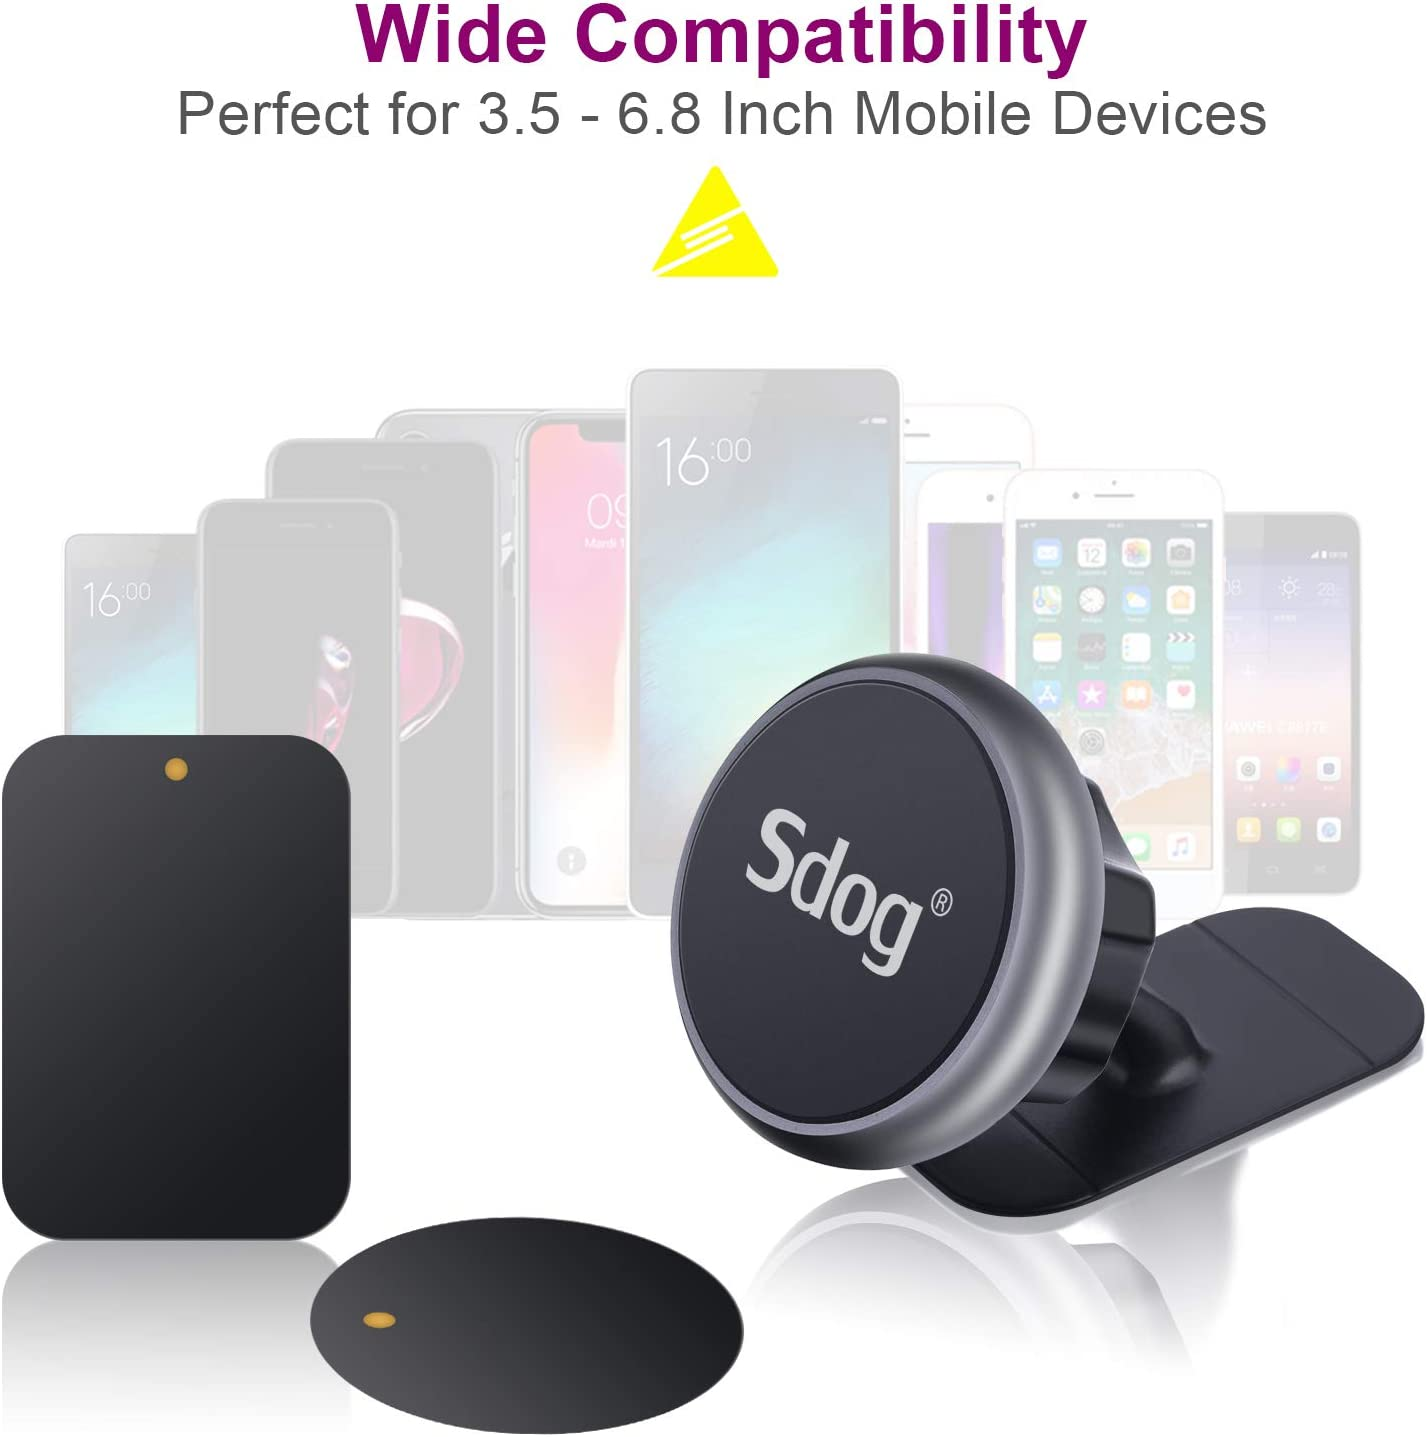 Sdog Universal Air Vent Dashboard Cell Phone Holder Mount with Strong Magnet Compatible iPhone X Xs Max XR 8 Plus 7 6 Samsung Galaxy S10 S9 S8 Plus etc Magnetic Car Mount, 2 Pack